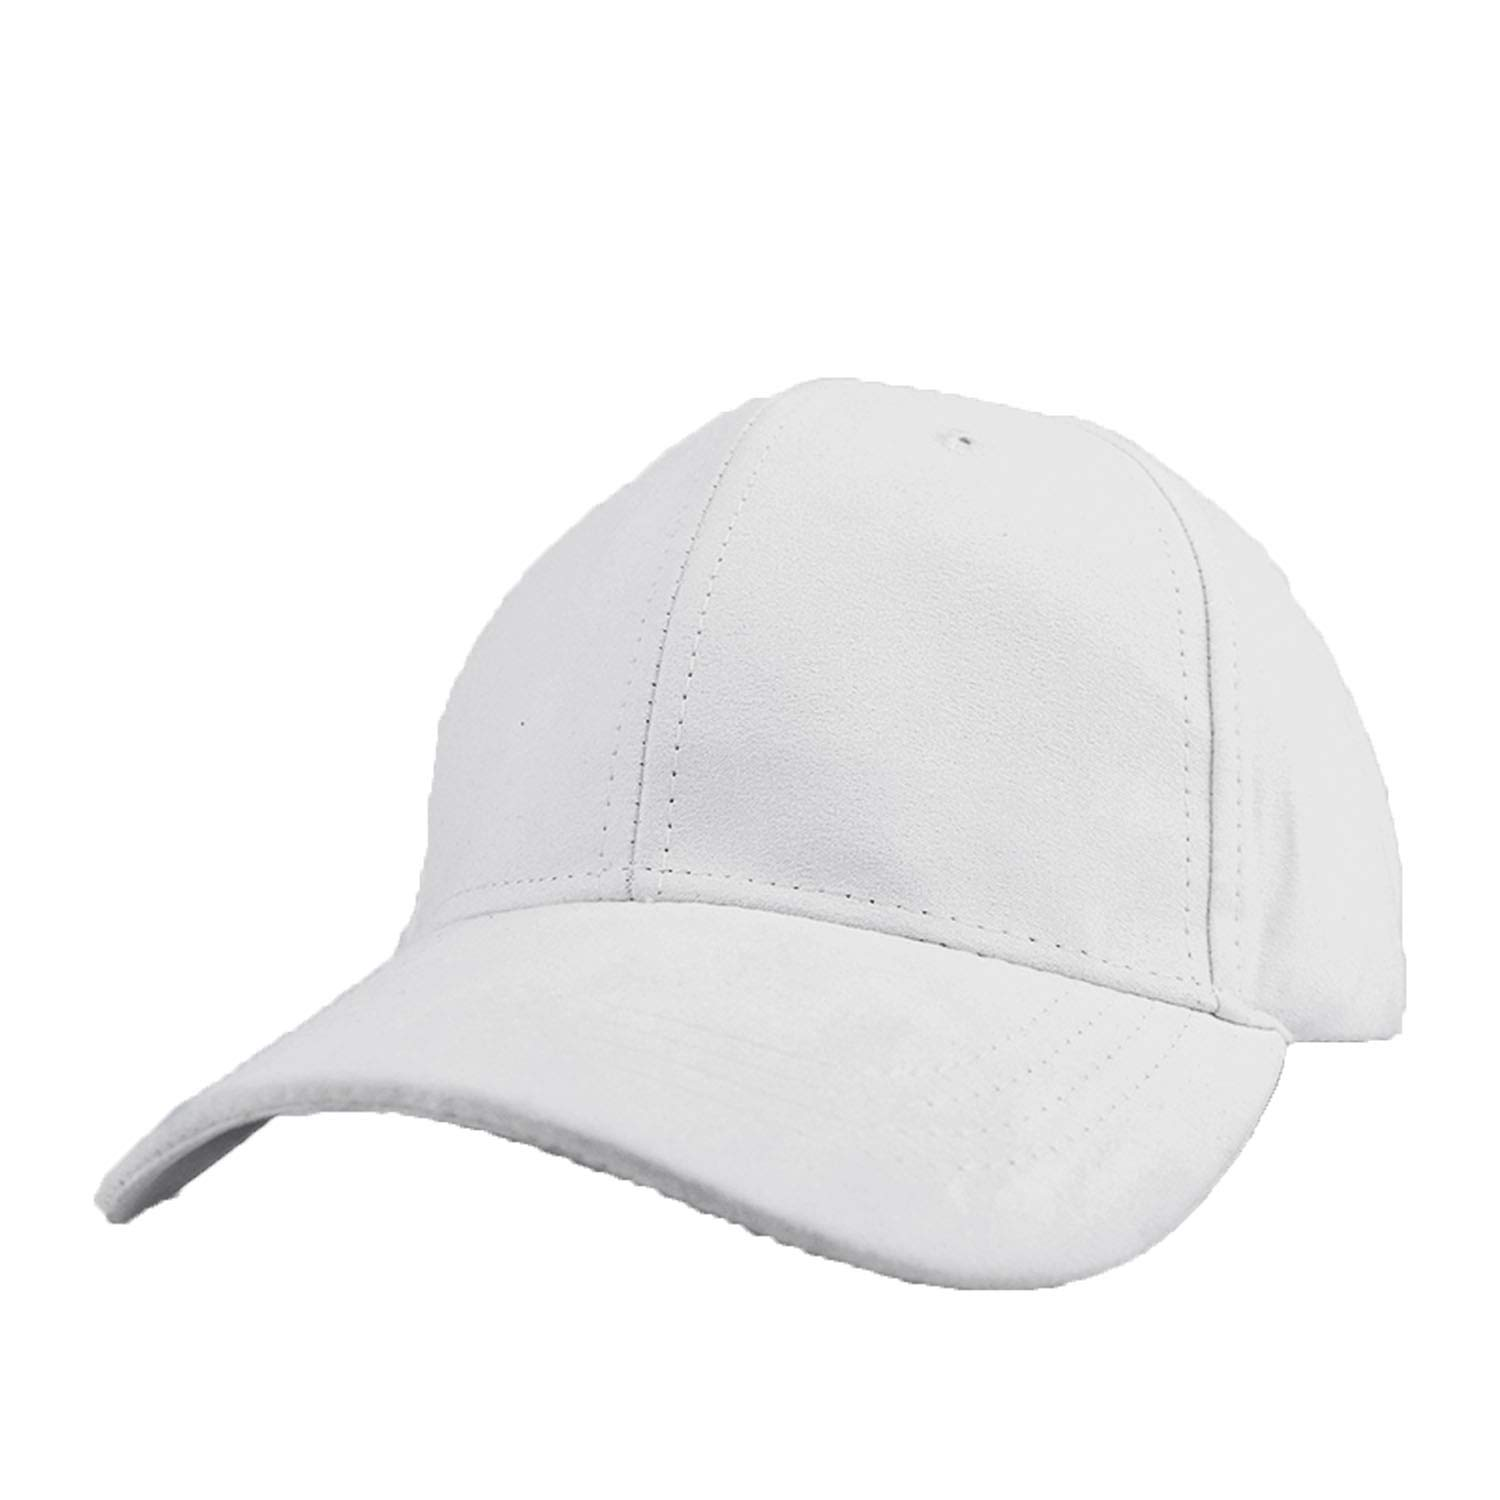 CHENTAI Unisex Soft Suede Baseball Cap Casual Solid Color Sports Hat Bone Snapback Adjustable Breathable Dad Hat